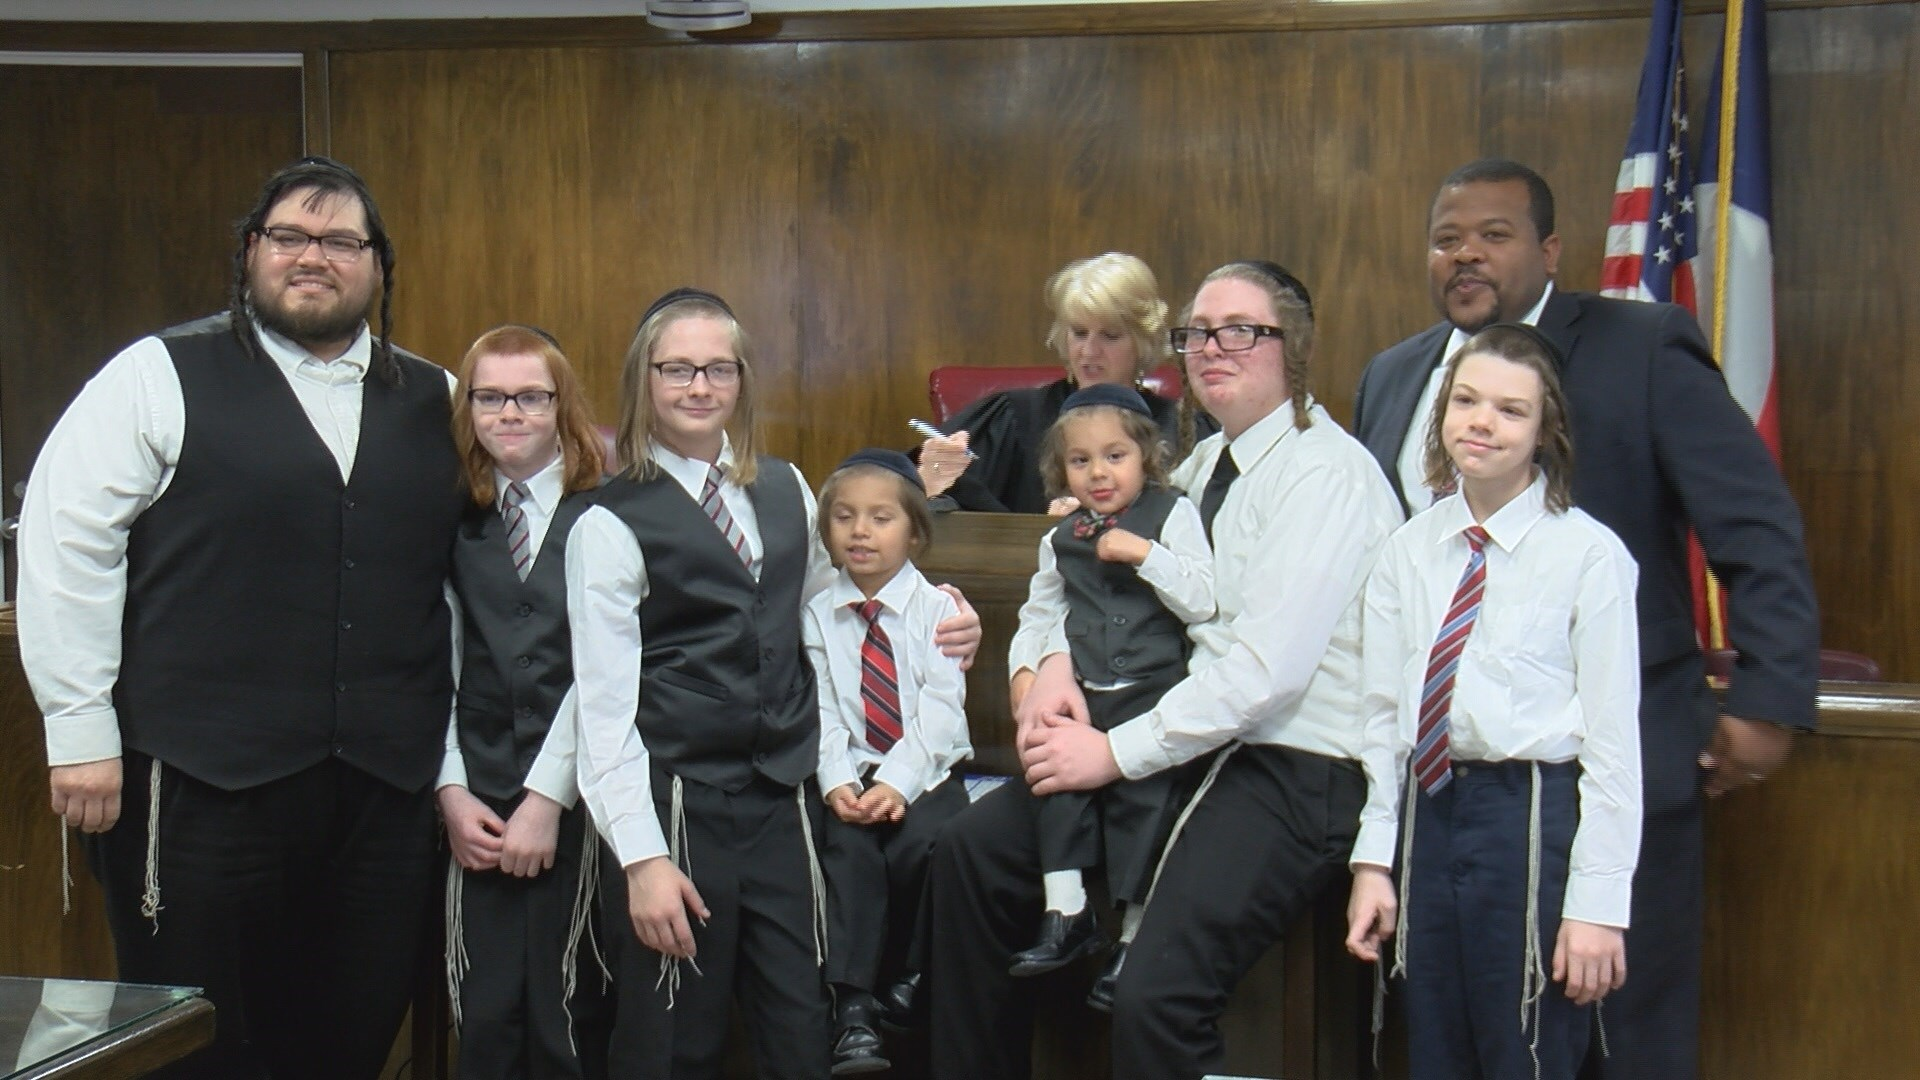 Texas family adopts 6 kids in 4 years